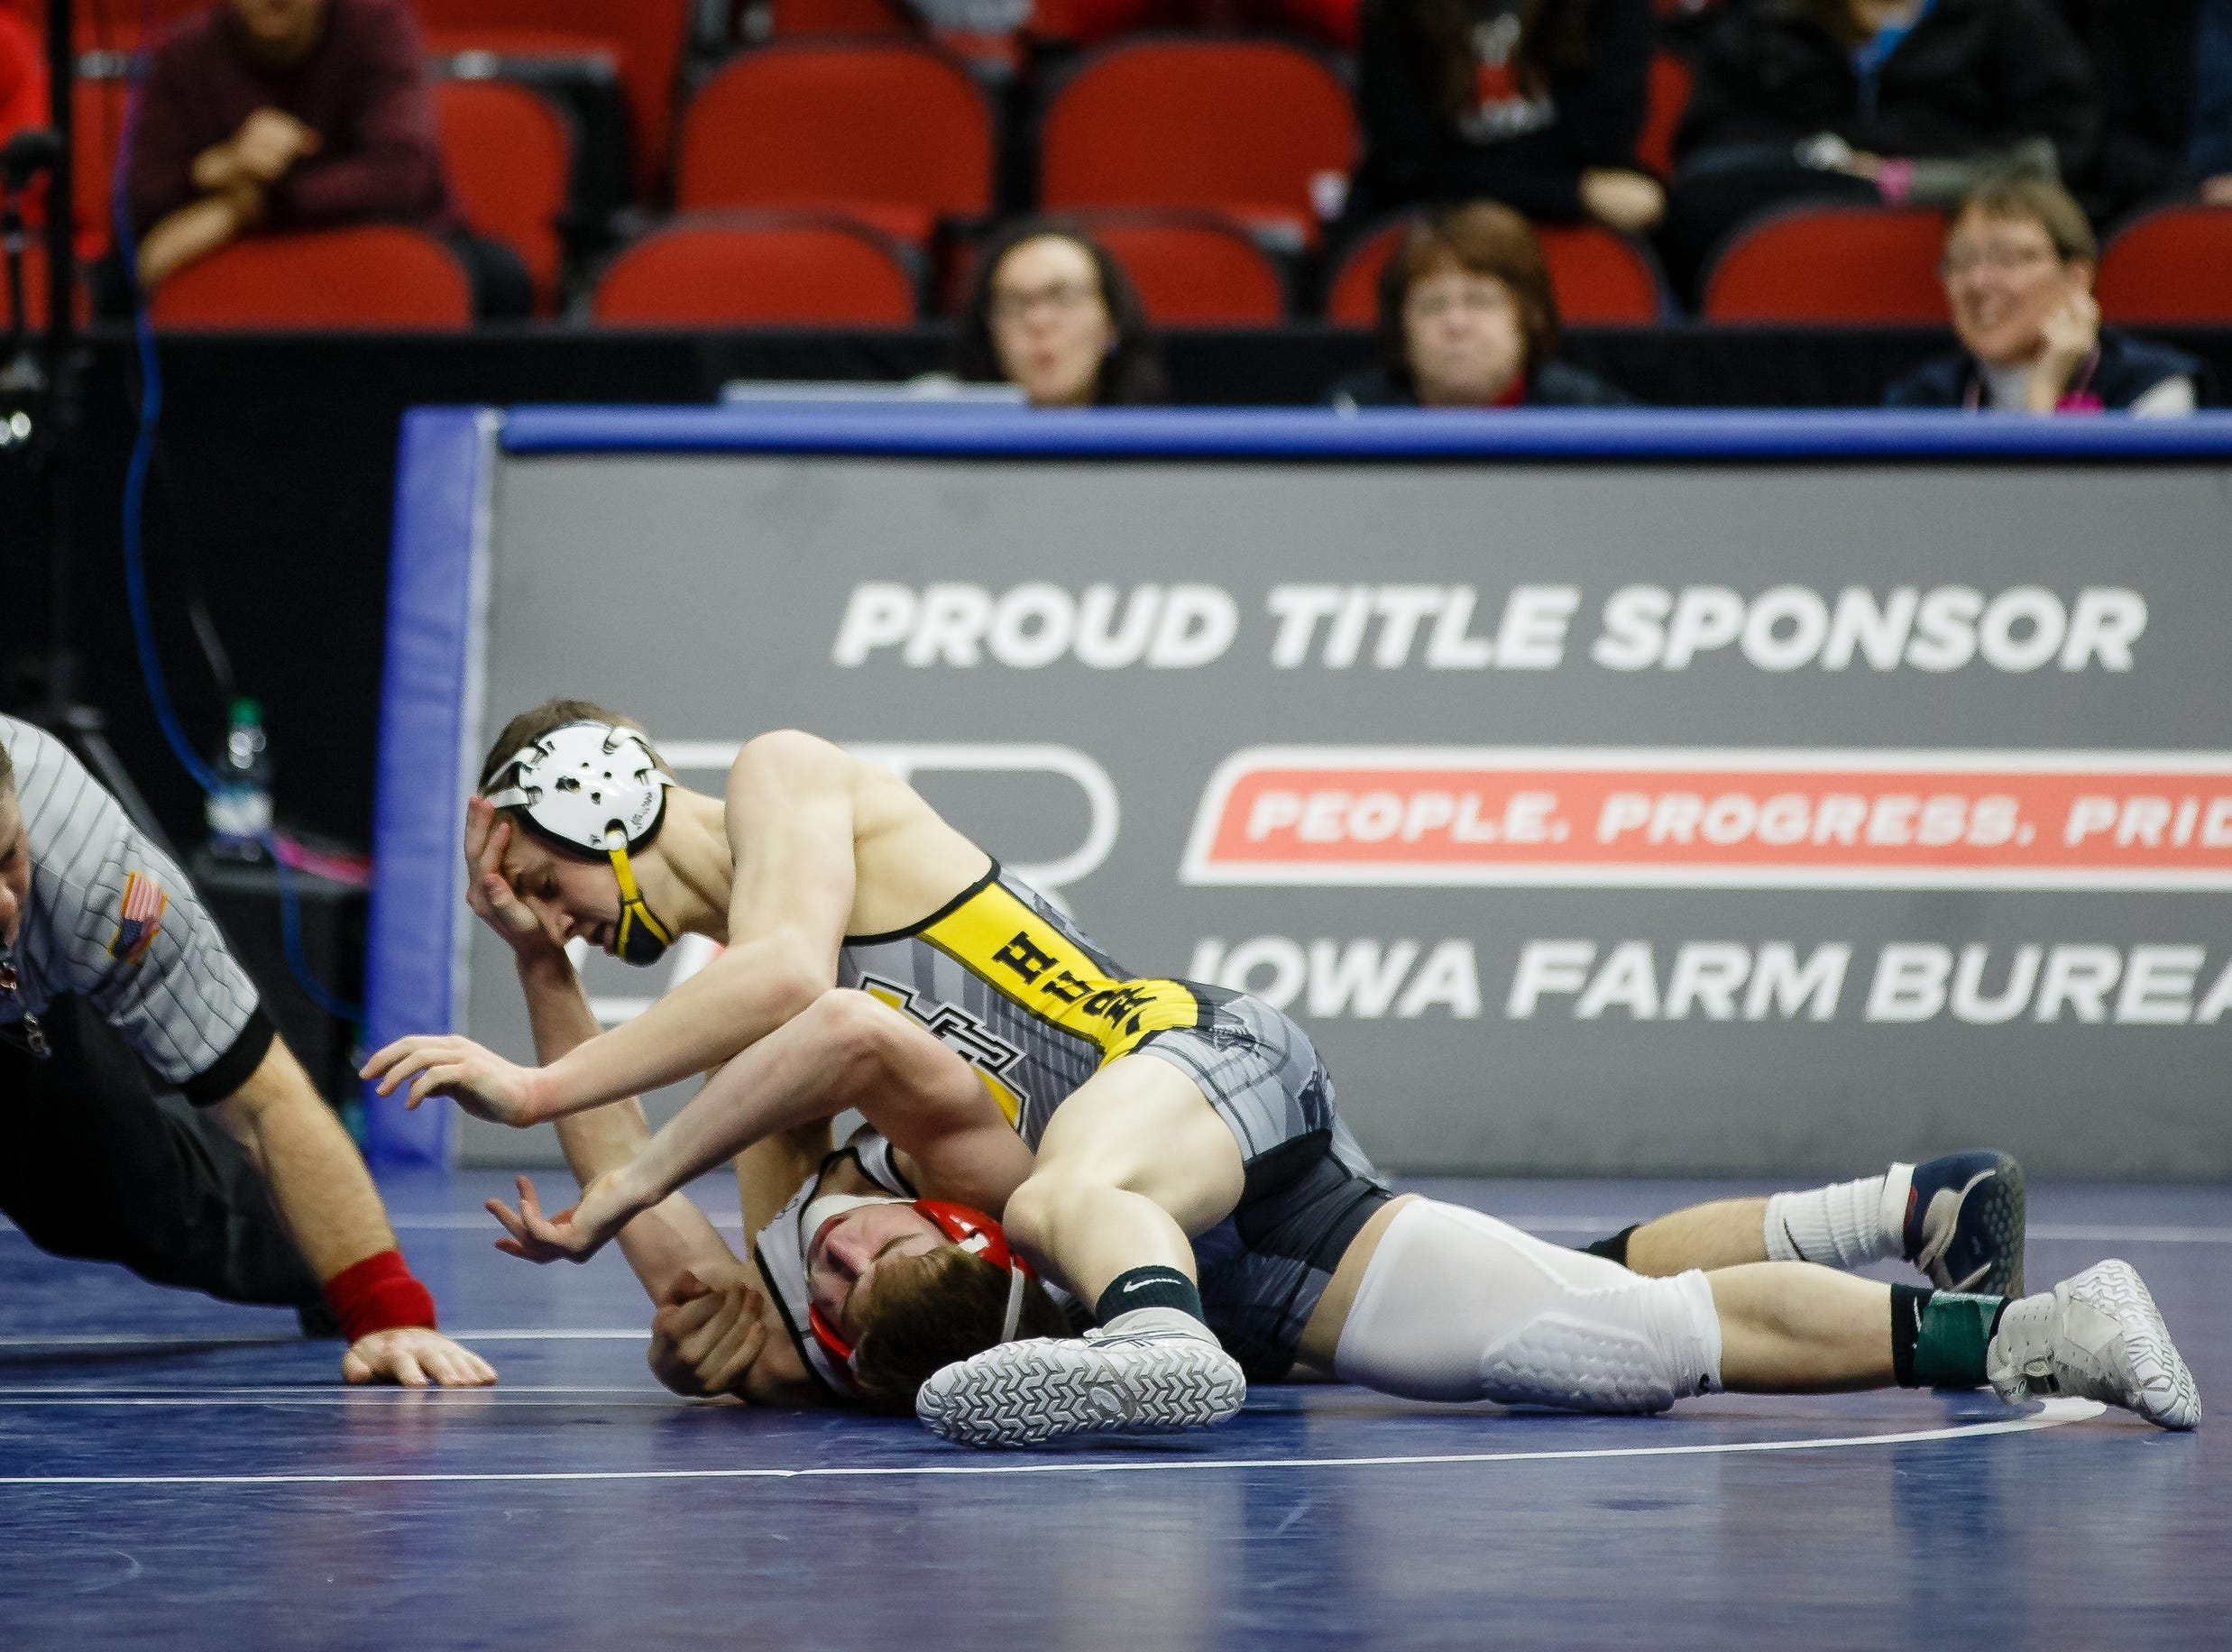 Bryce Hatten of Winterset wrestles Mason Cleveland of NH/TV during their class 2A 126 pound state championship semi-final match on Friday, Feb. 15, 2019 in Des Moines. Hatten moves onto the finals with a 16-6 major decision.